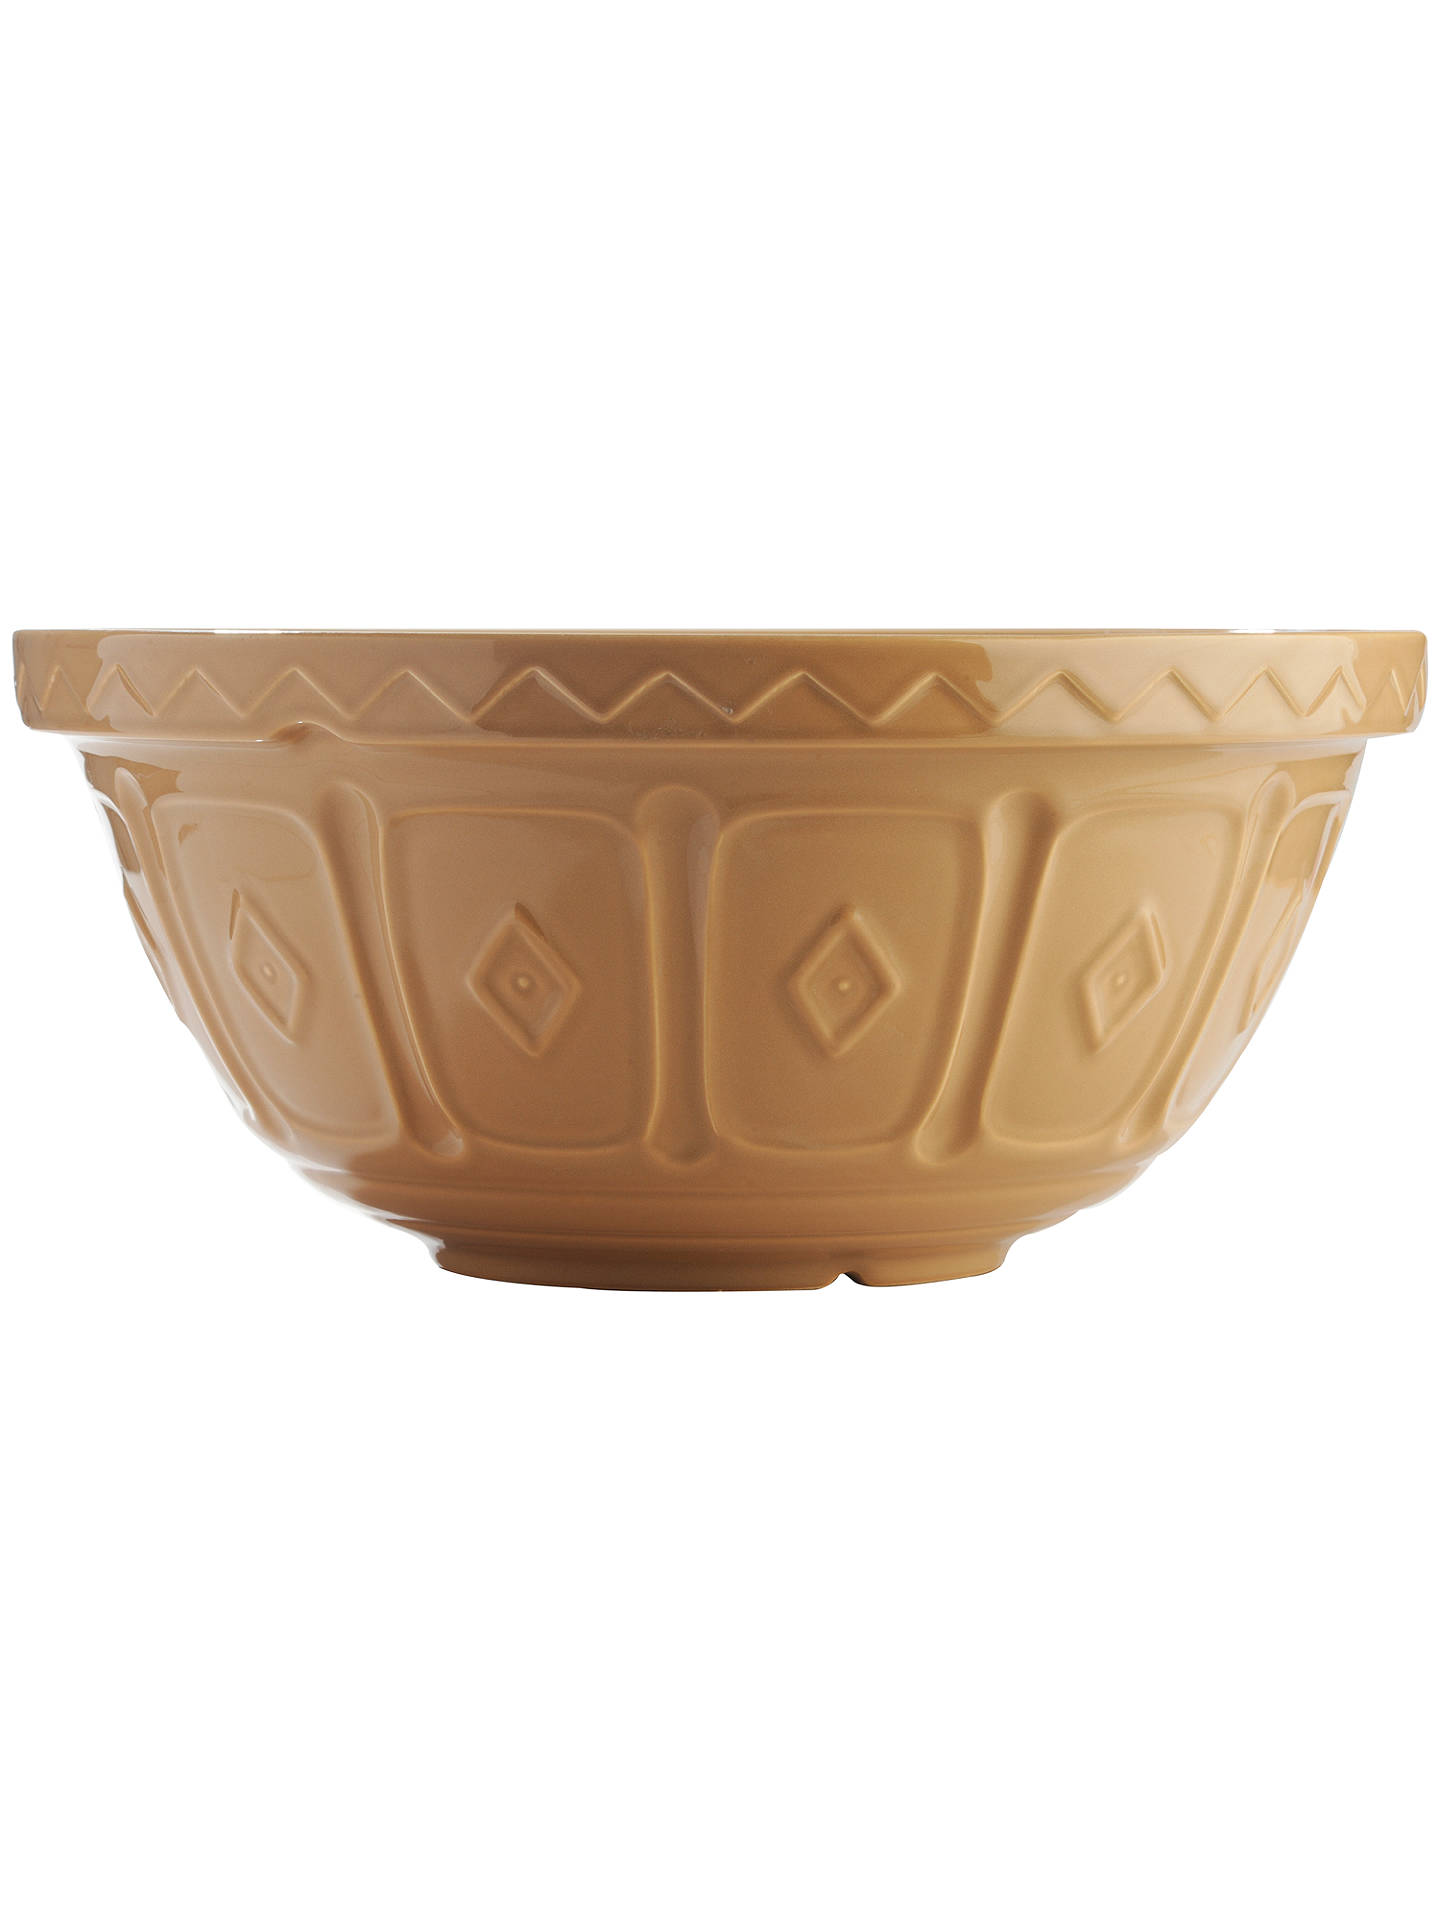 Buy Mason Cash Ceramic Mixing Bowl, 4.3L Online at johnlewis.com